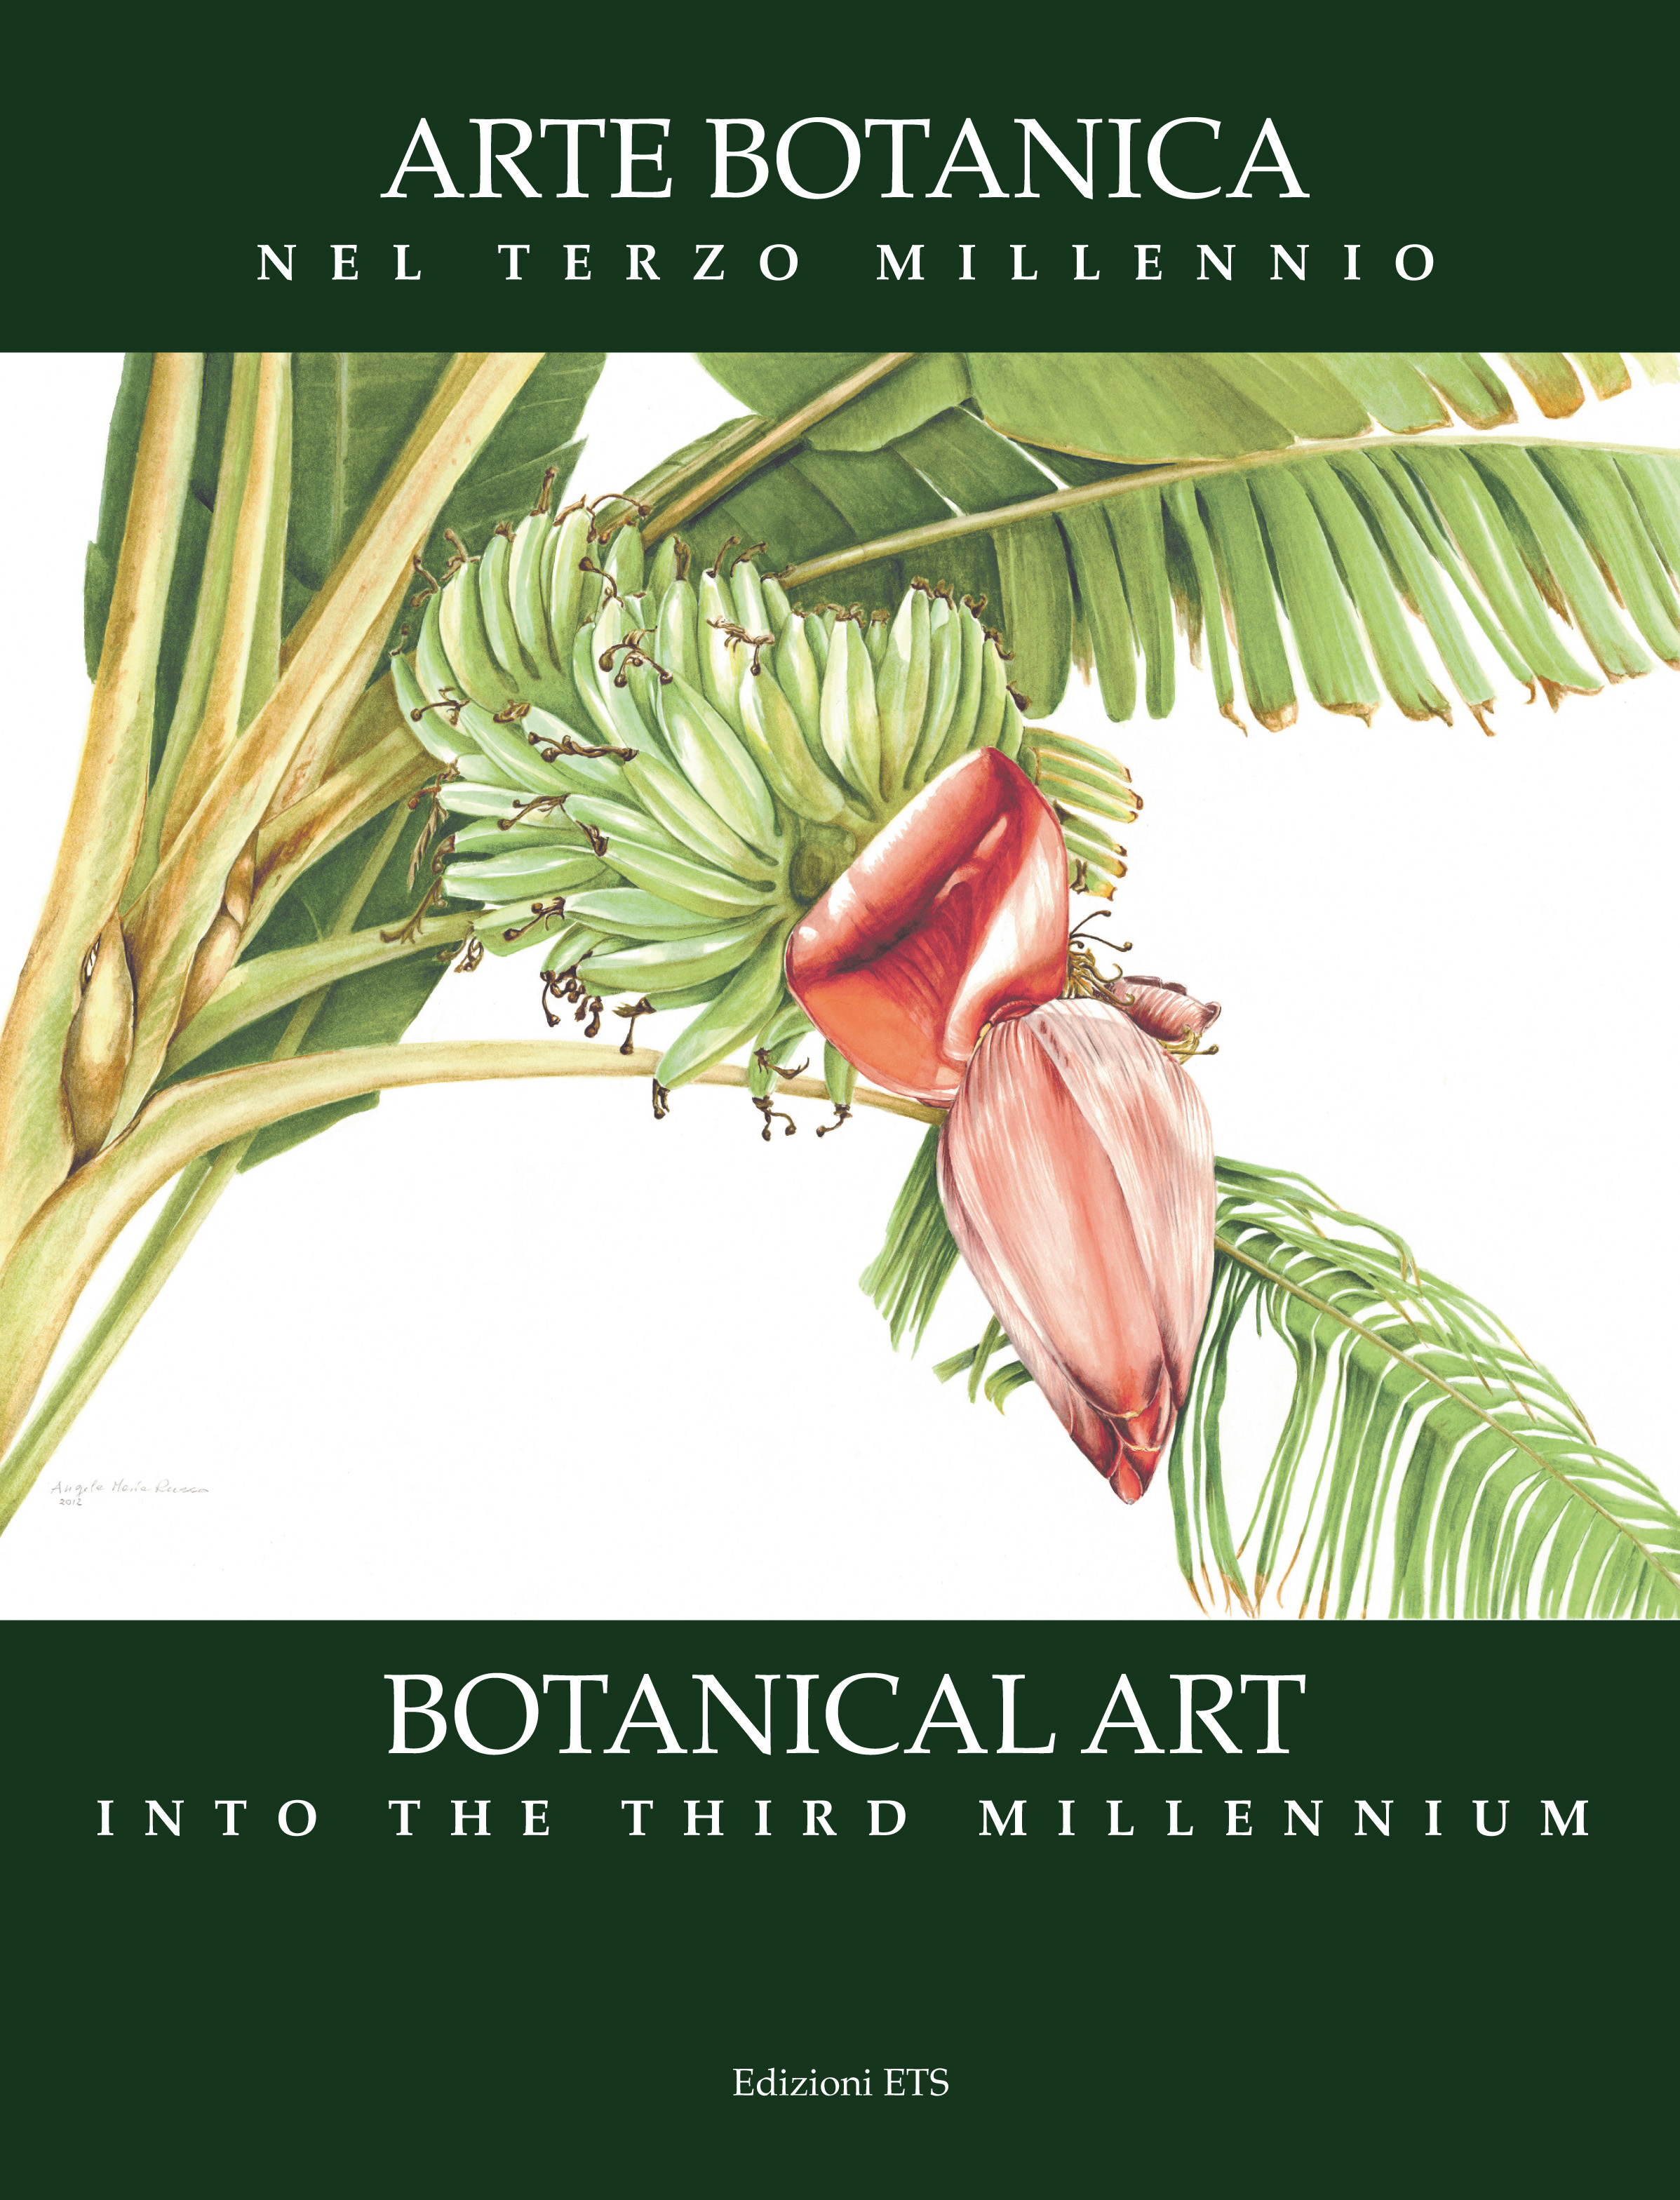 Arte botanica nel terzo Millennio.